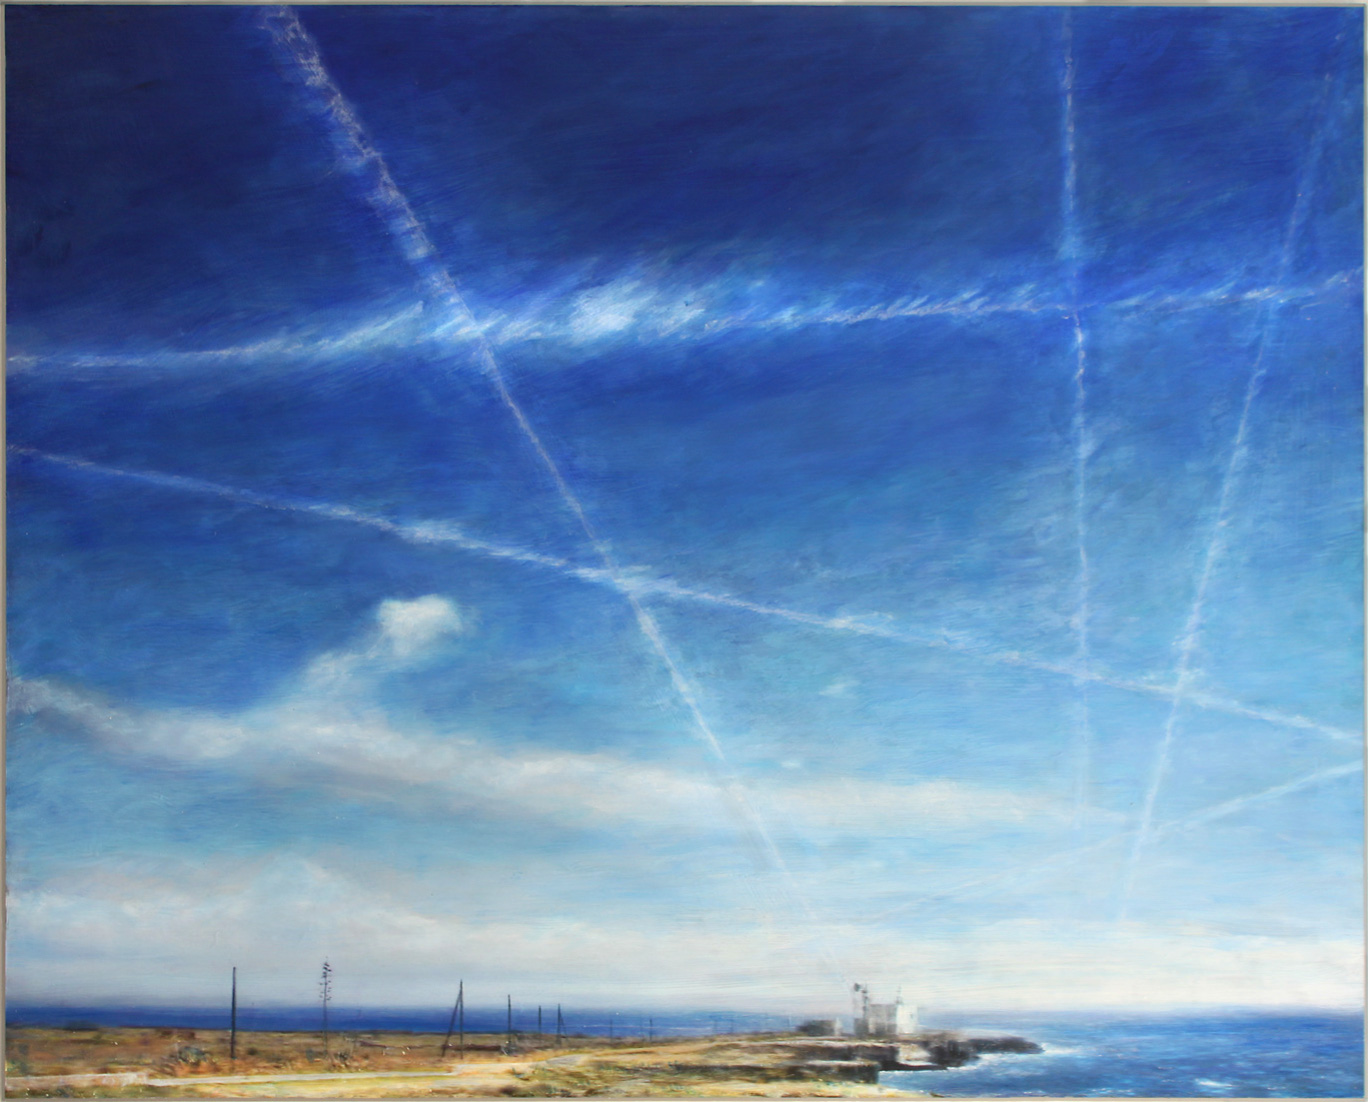 ARTIFICTION#1, Favignana Jet Trails, digitale & manuelle Malerei auf Alucore/digital and manual painting on Alucore, 80x99,7x2 cm, 2013-2014